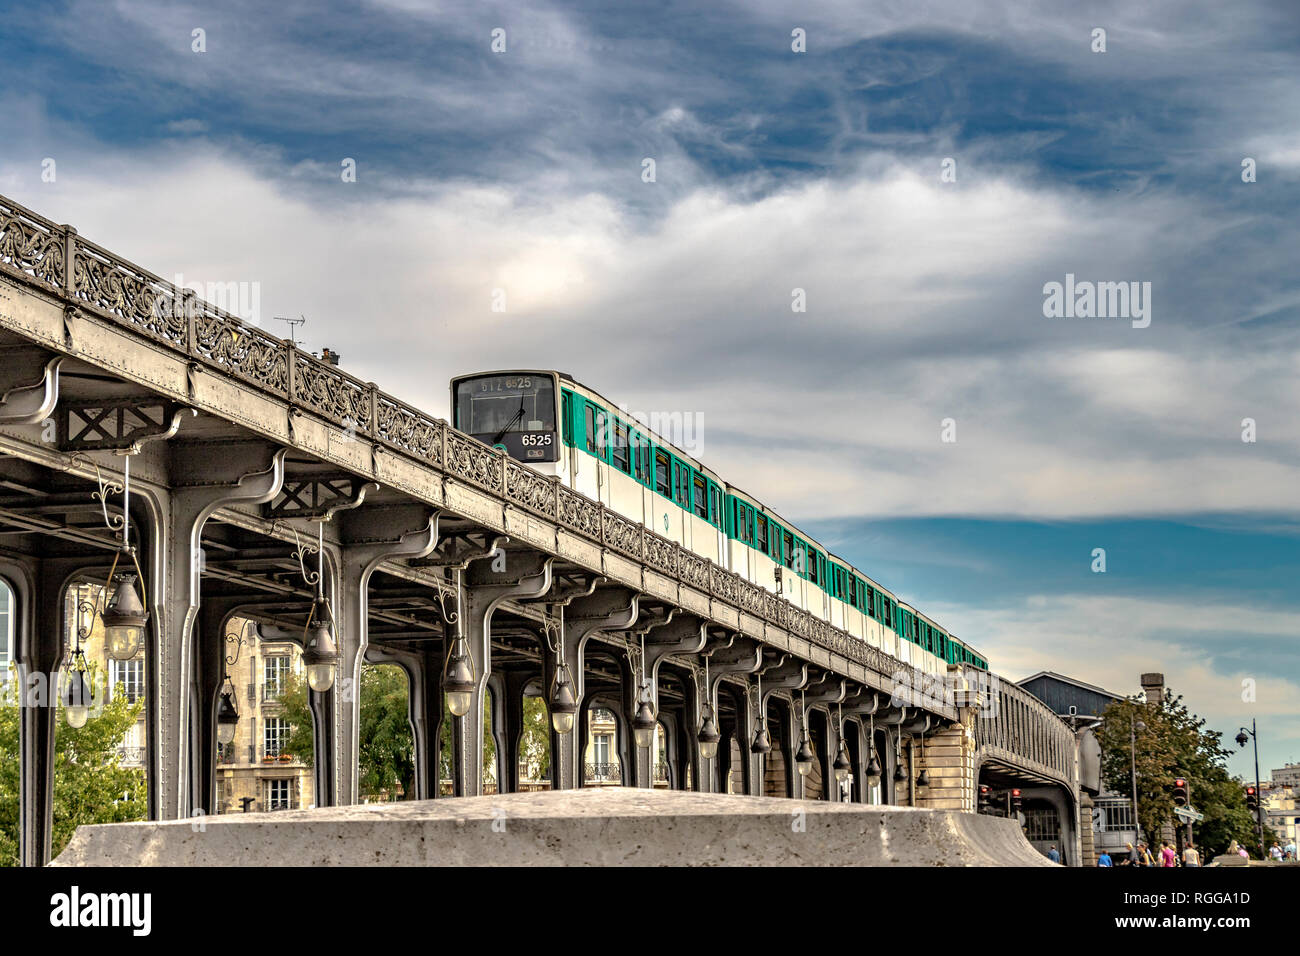 Having just departed Passy station, a Paris Metro Line 6 Metro train crosses Pont de Bir-Hakeim , a two tier viaduct bridge in Paris,France - Stock Image